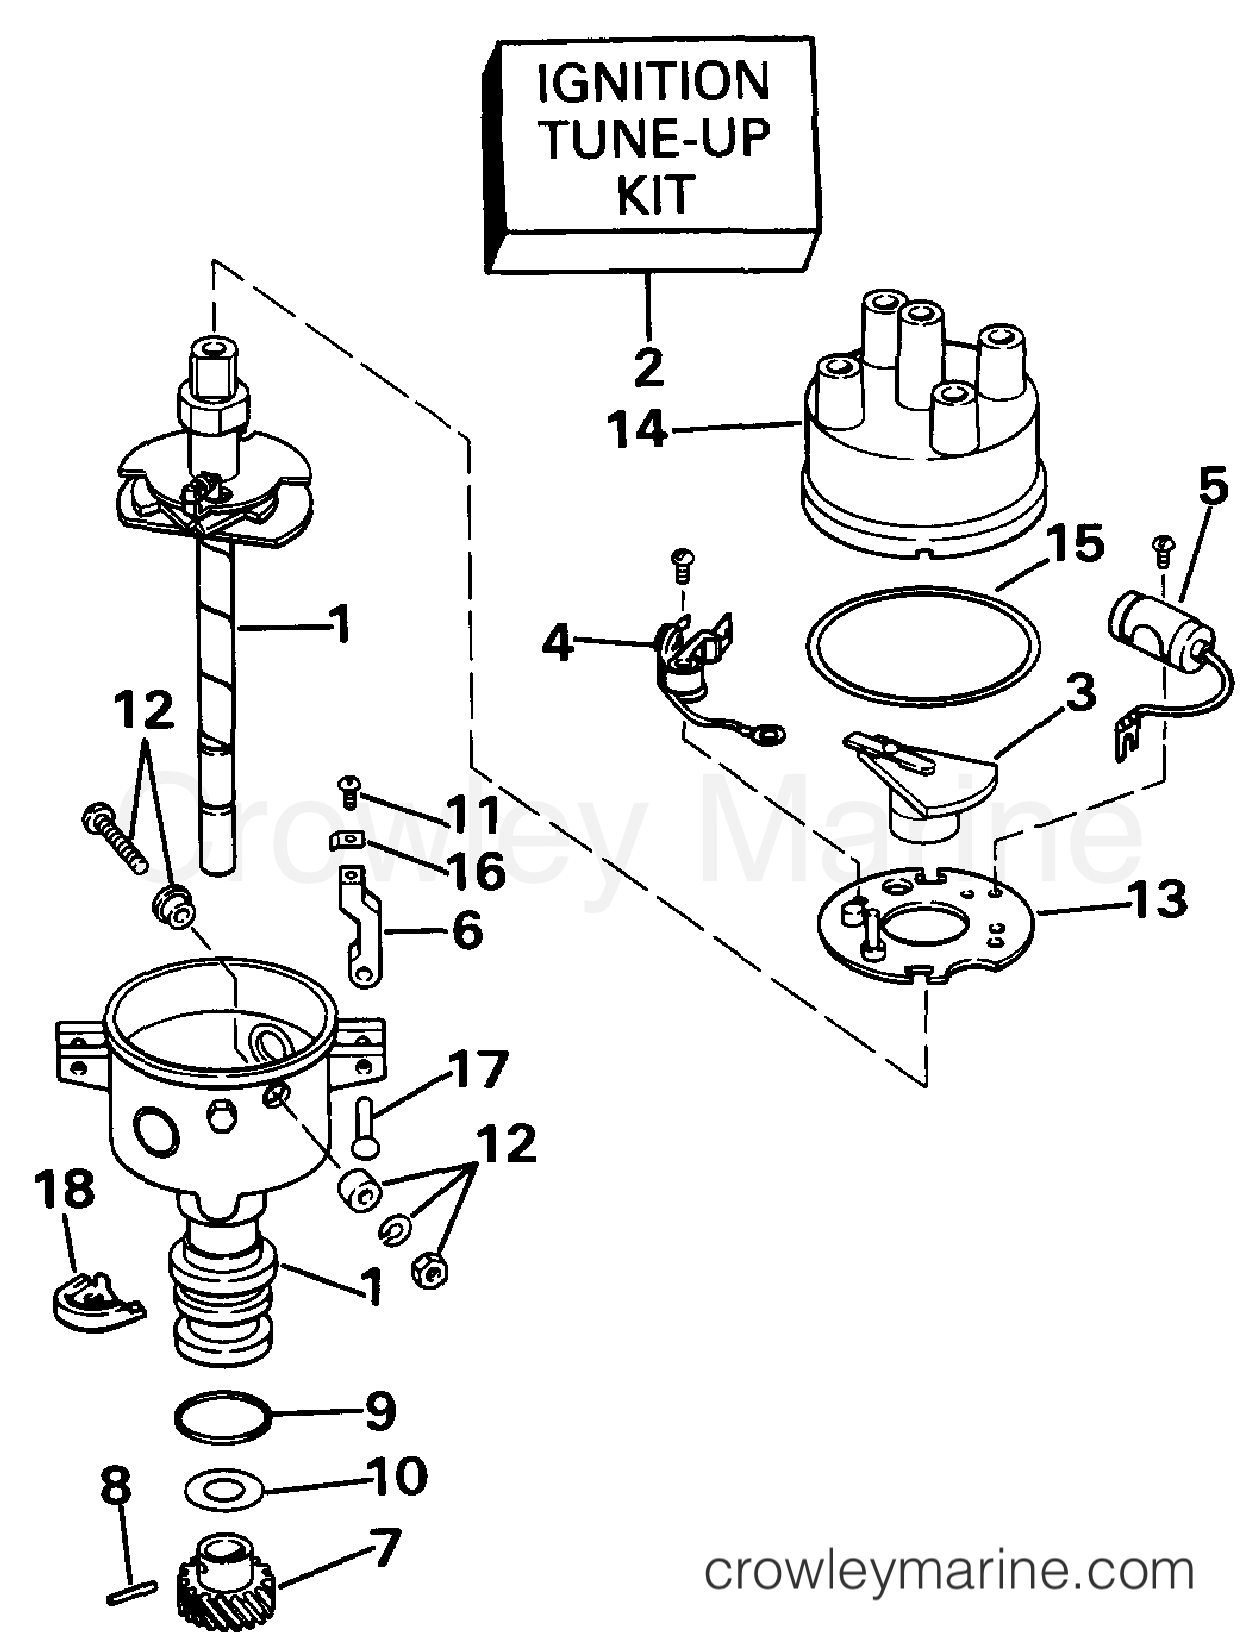 distributor drawing at getdrawings free for personal use Accel Ignition Troubleshooting 1260x1651 distributor